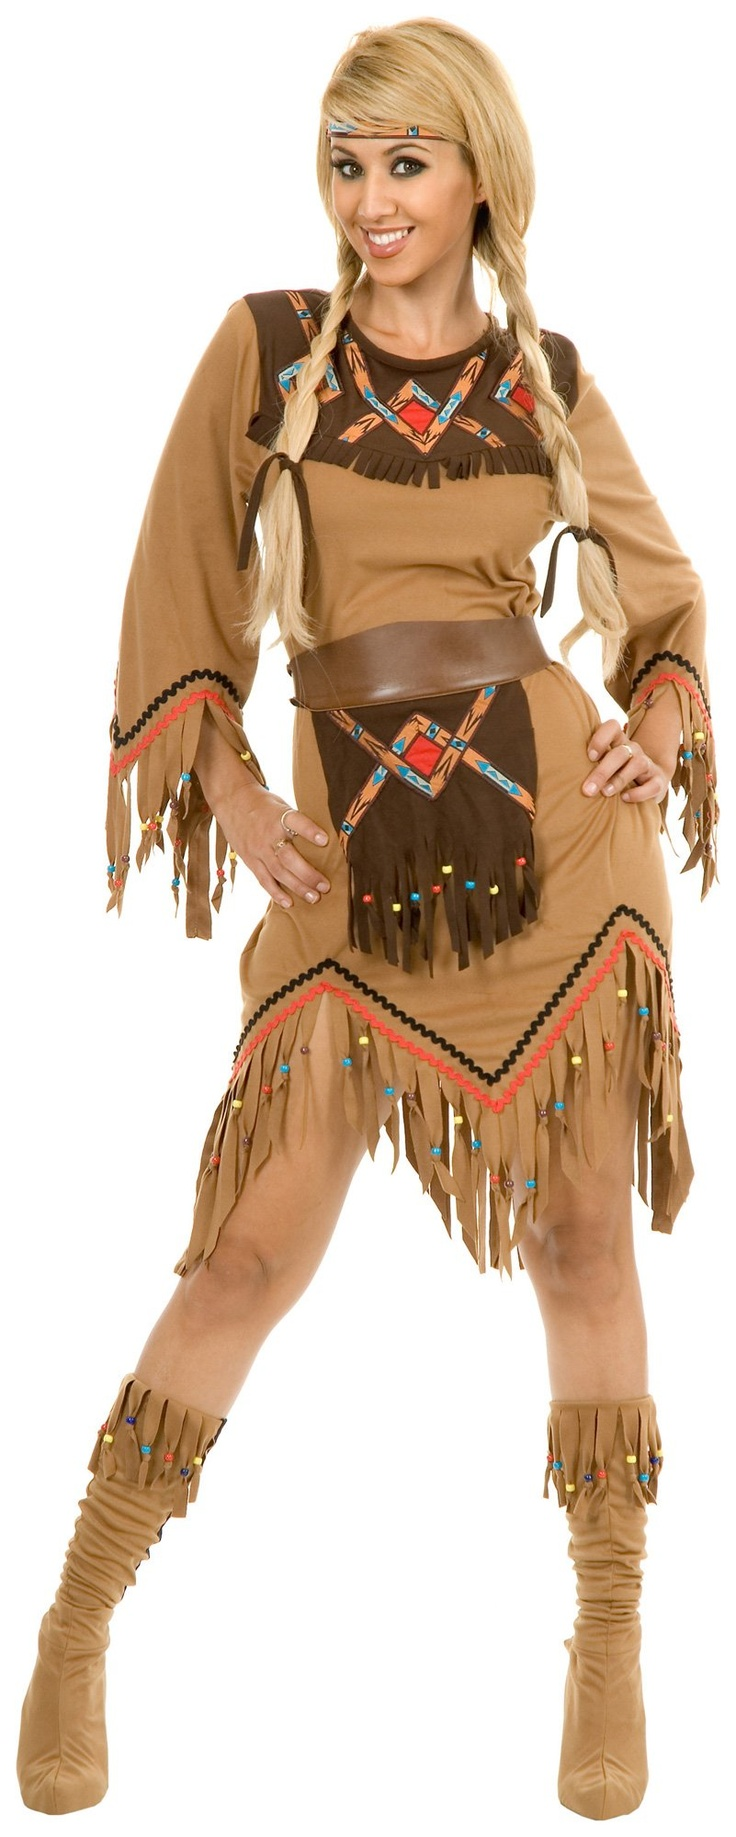 Sacajawea Indian Maiden Adult Costume  Costumes  Make Up -6480